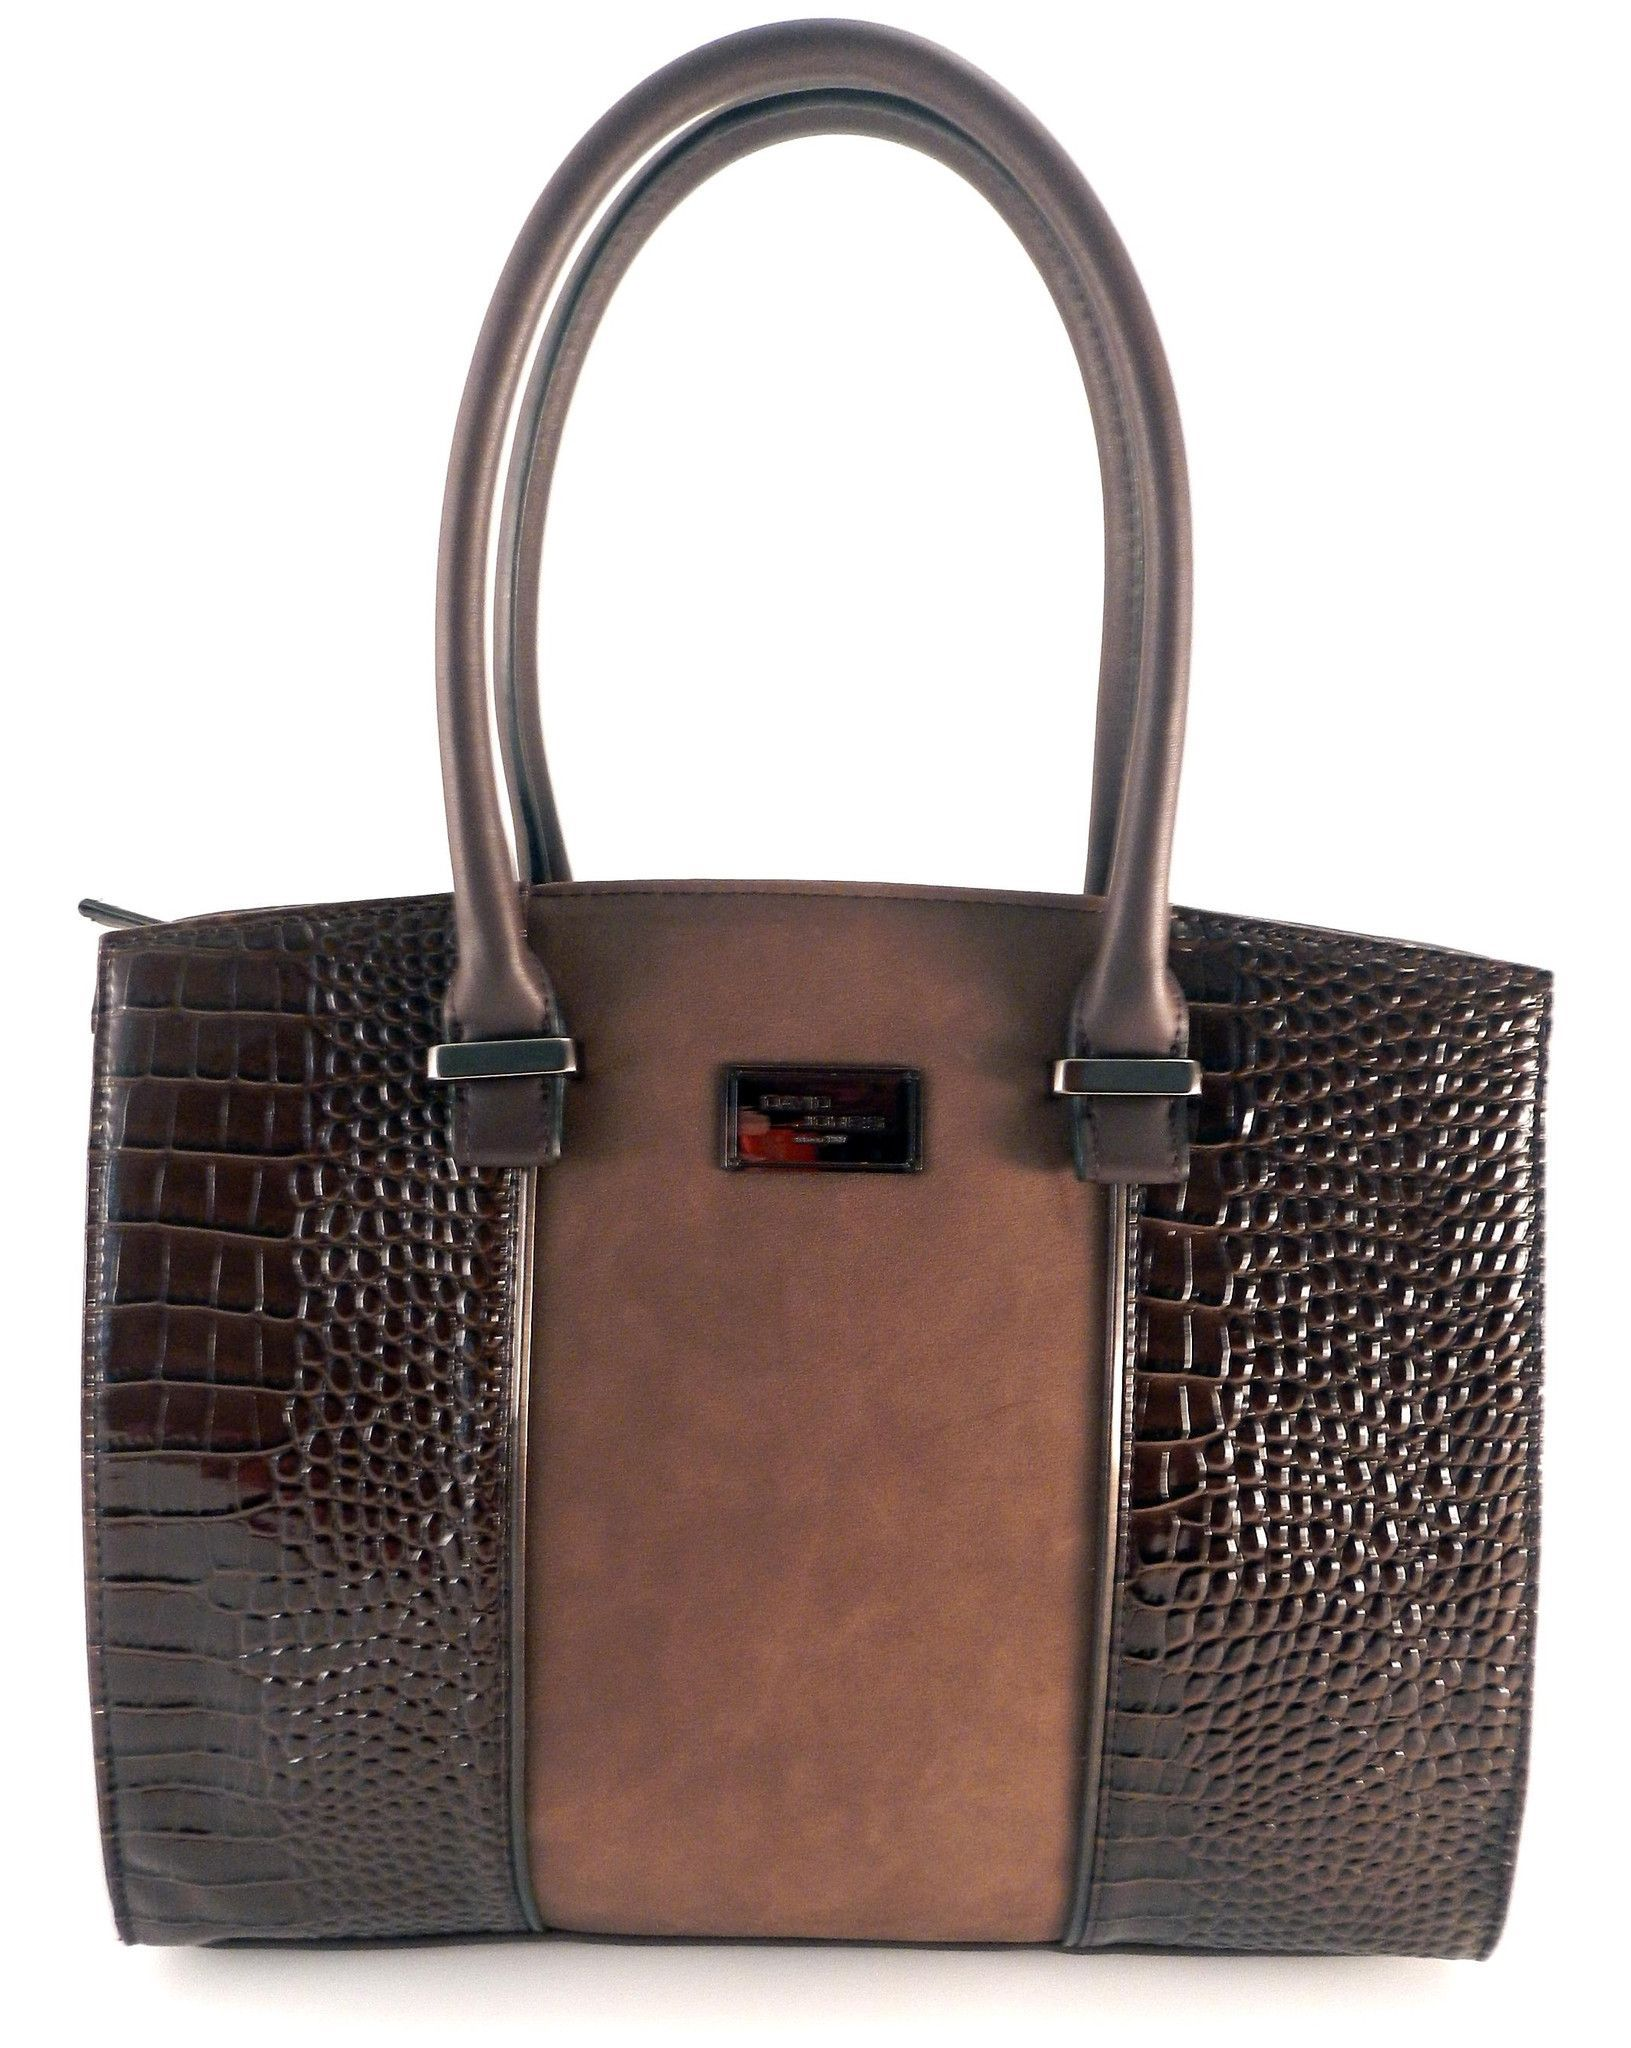 David Jones Paris Tote Handbag